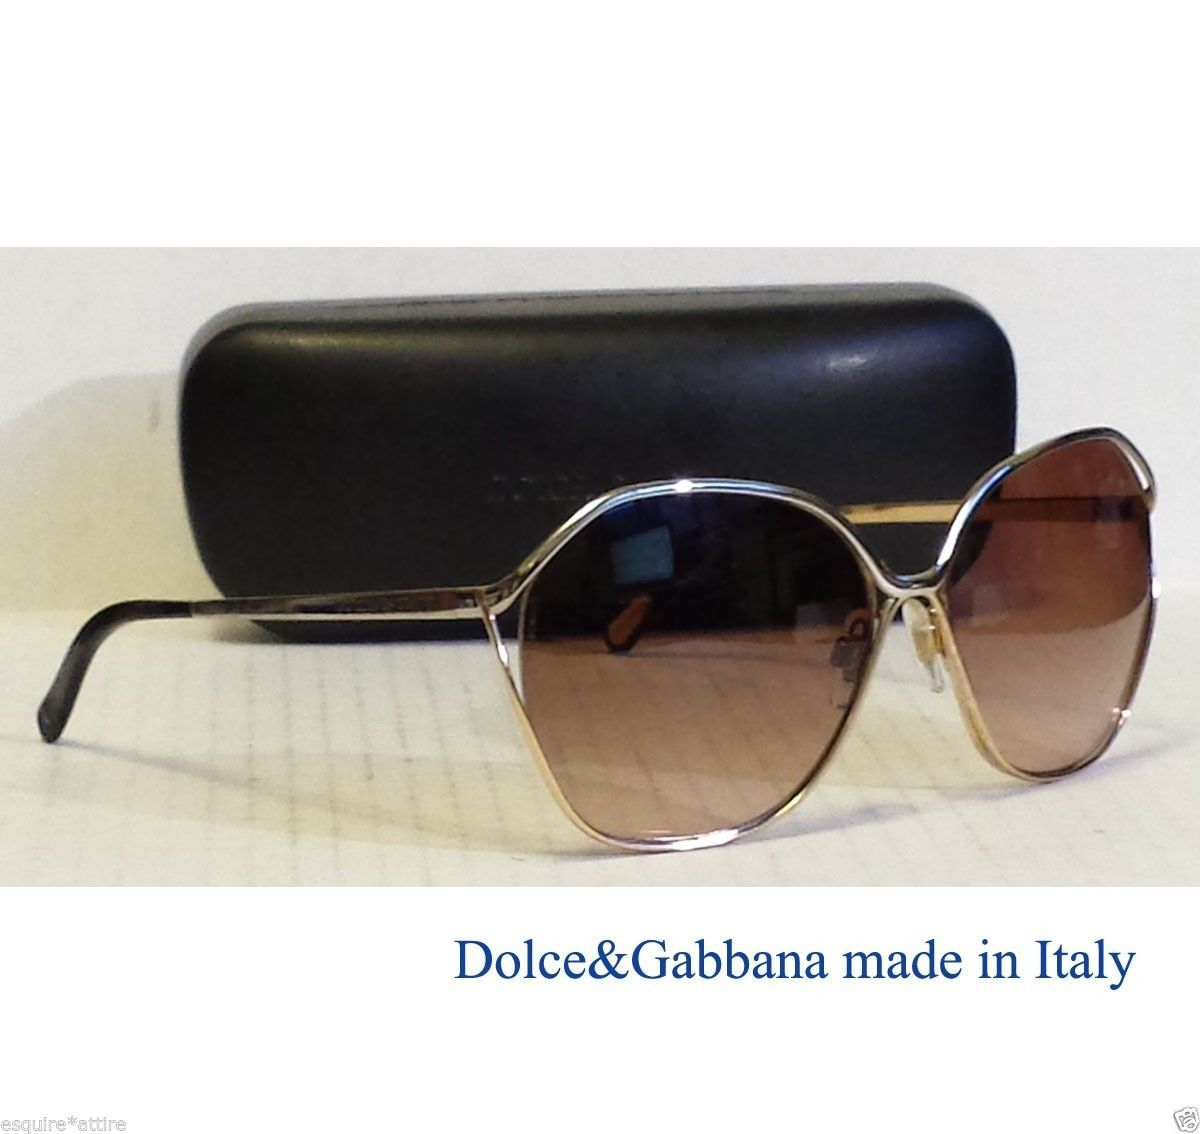 0141ca1881c Dolce Gabbana Women Sunglasses DG2091 034 13 59x16 135 2N made in ...